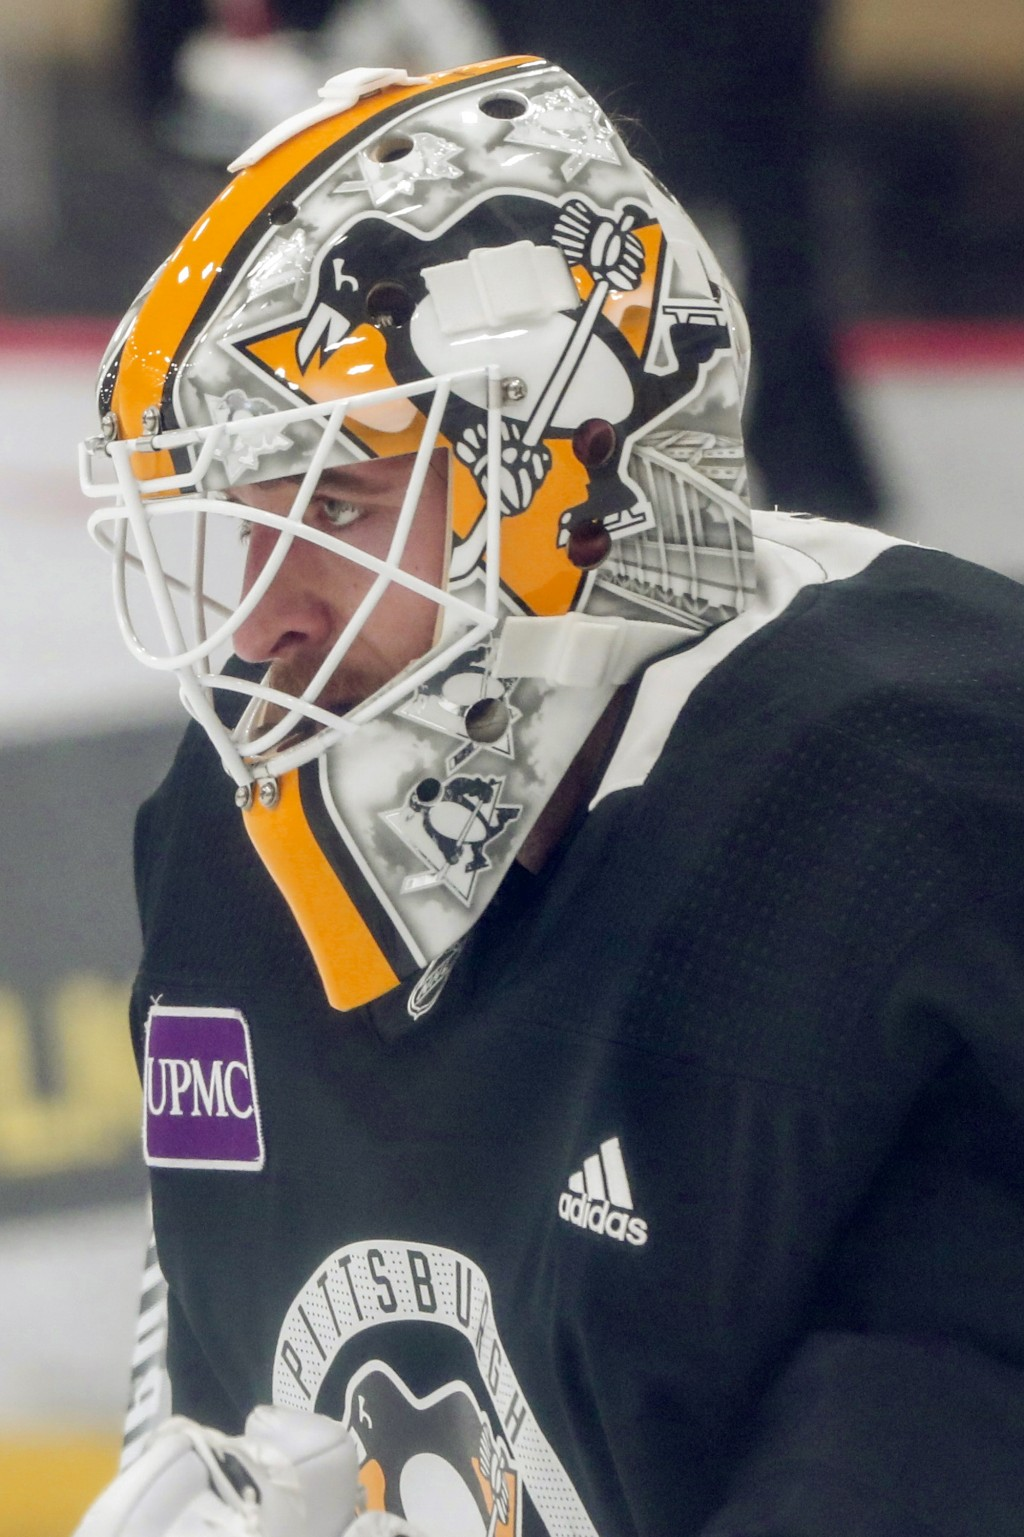 Pittsburgh Penguins goalie Matt Murray looks at the play ahead of him during NHL hockey practice on the team's first day of training camp, Friday, Sep...